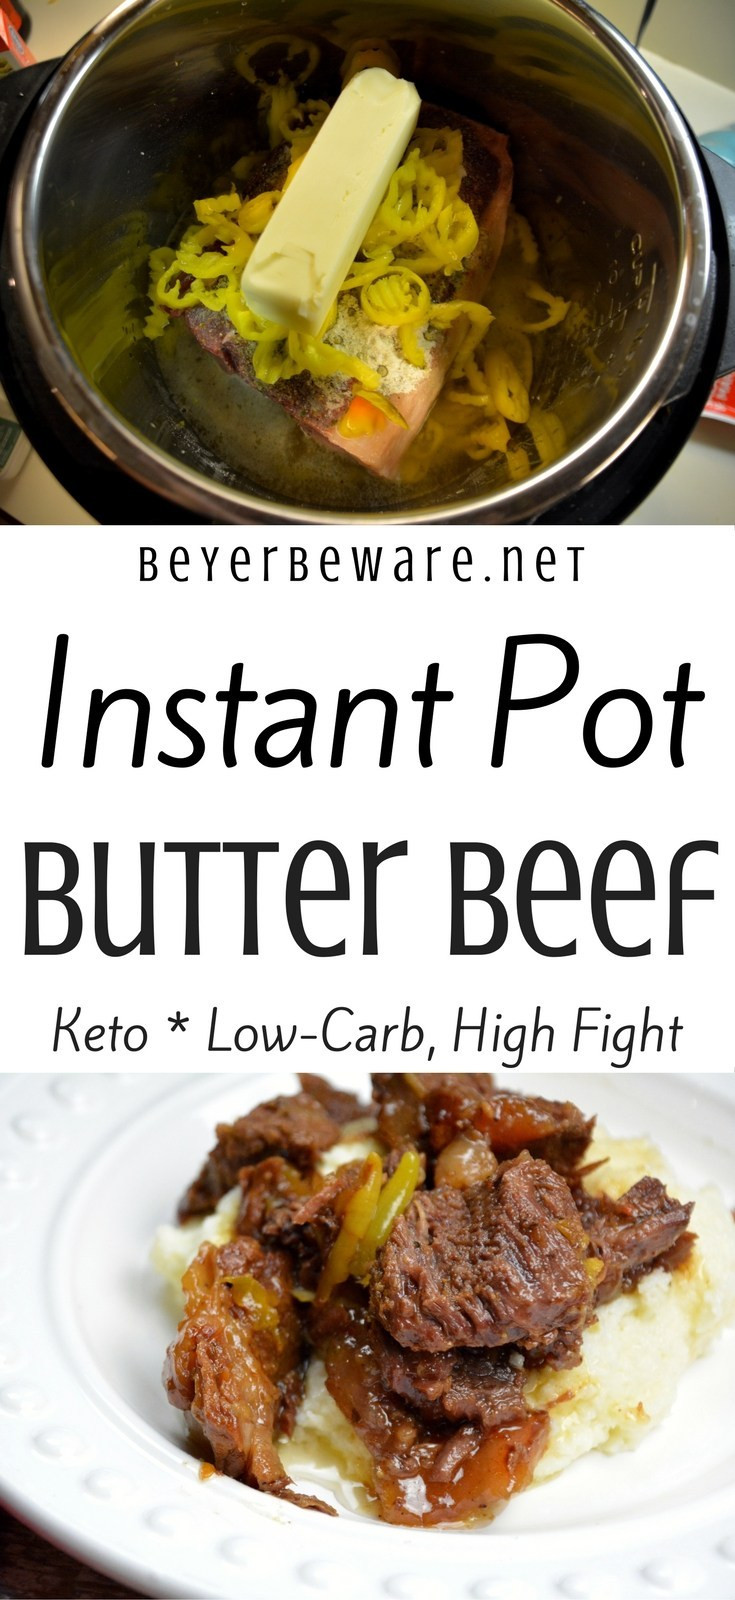 Instant Pot Low Carb Recipes  Instant Pot Butter Beef Keto Low Carb Recipe Beyer Beware